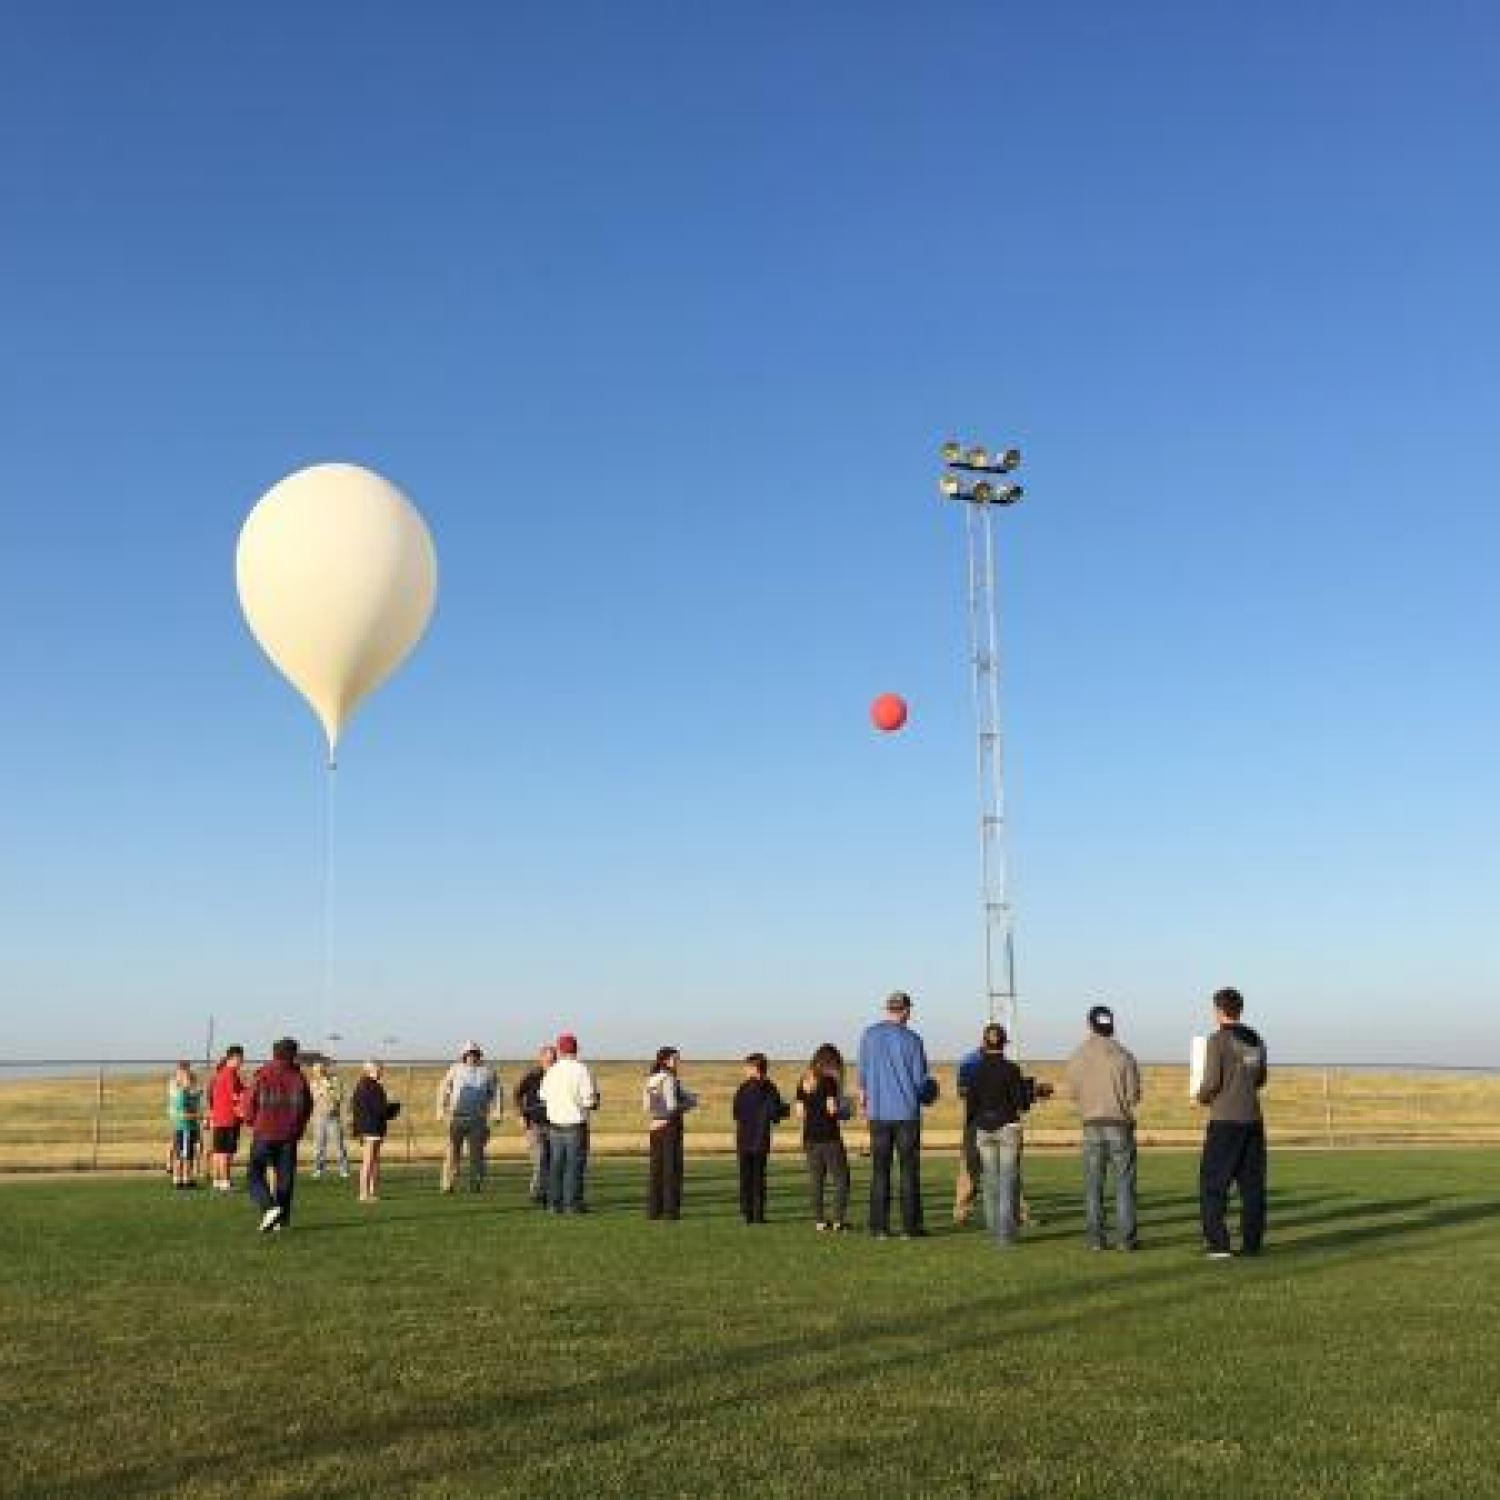 Future unmanned hypersonic aircraft may owe part of their success to CU Boulder atmospheric research